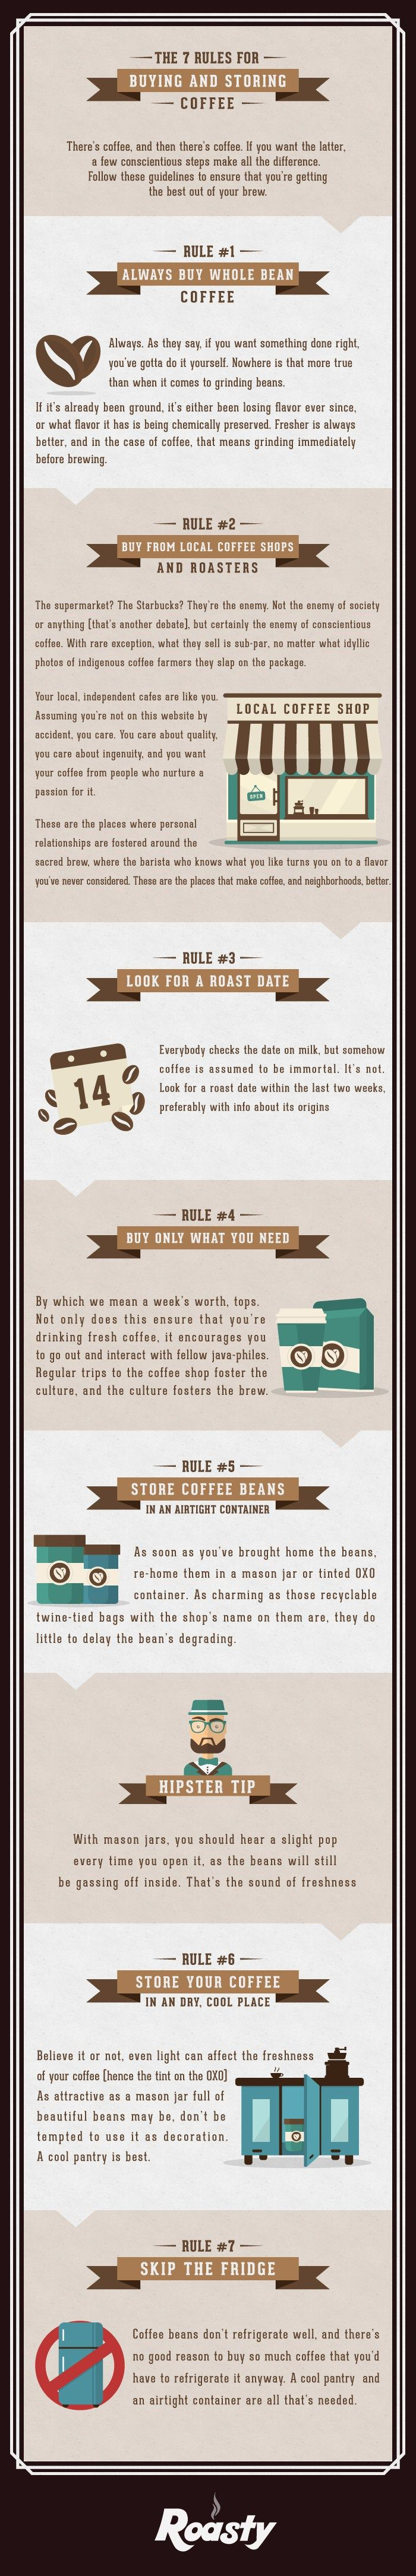 Buying And Storing Coffee Beans Infographic